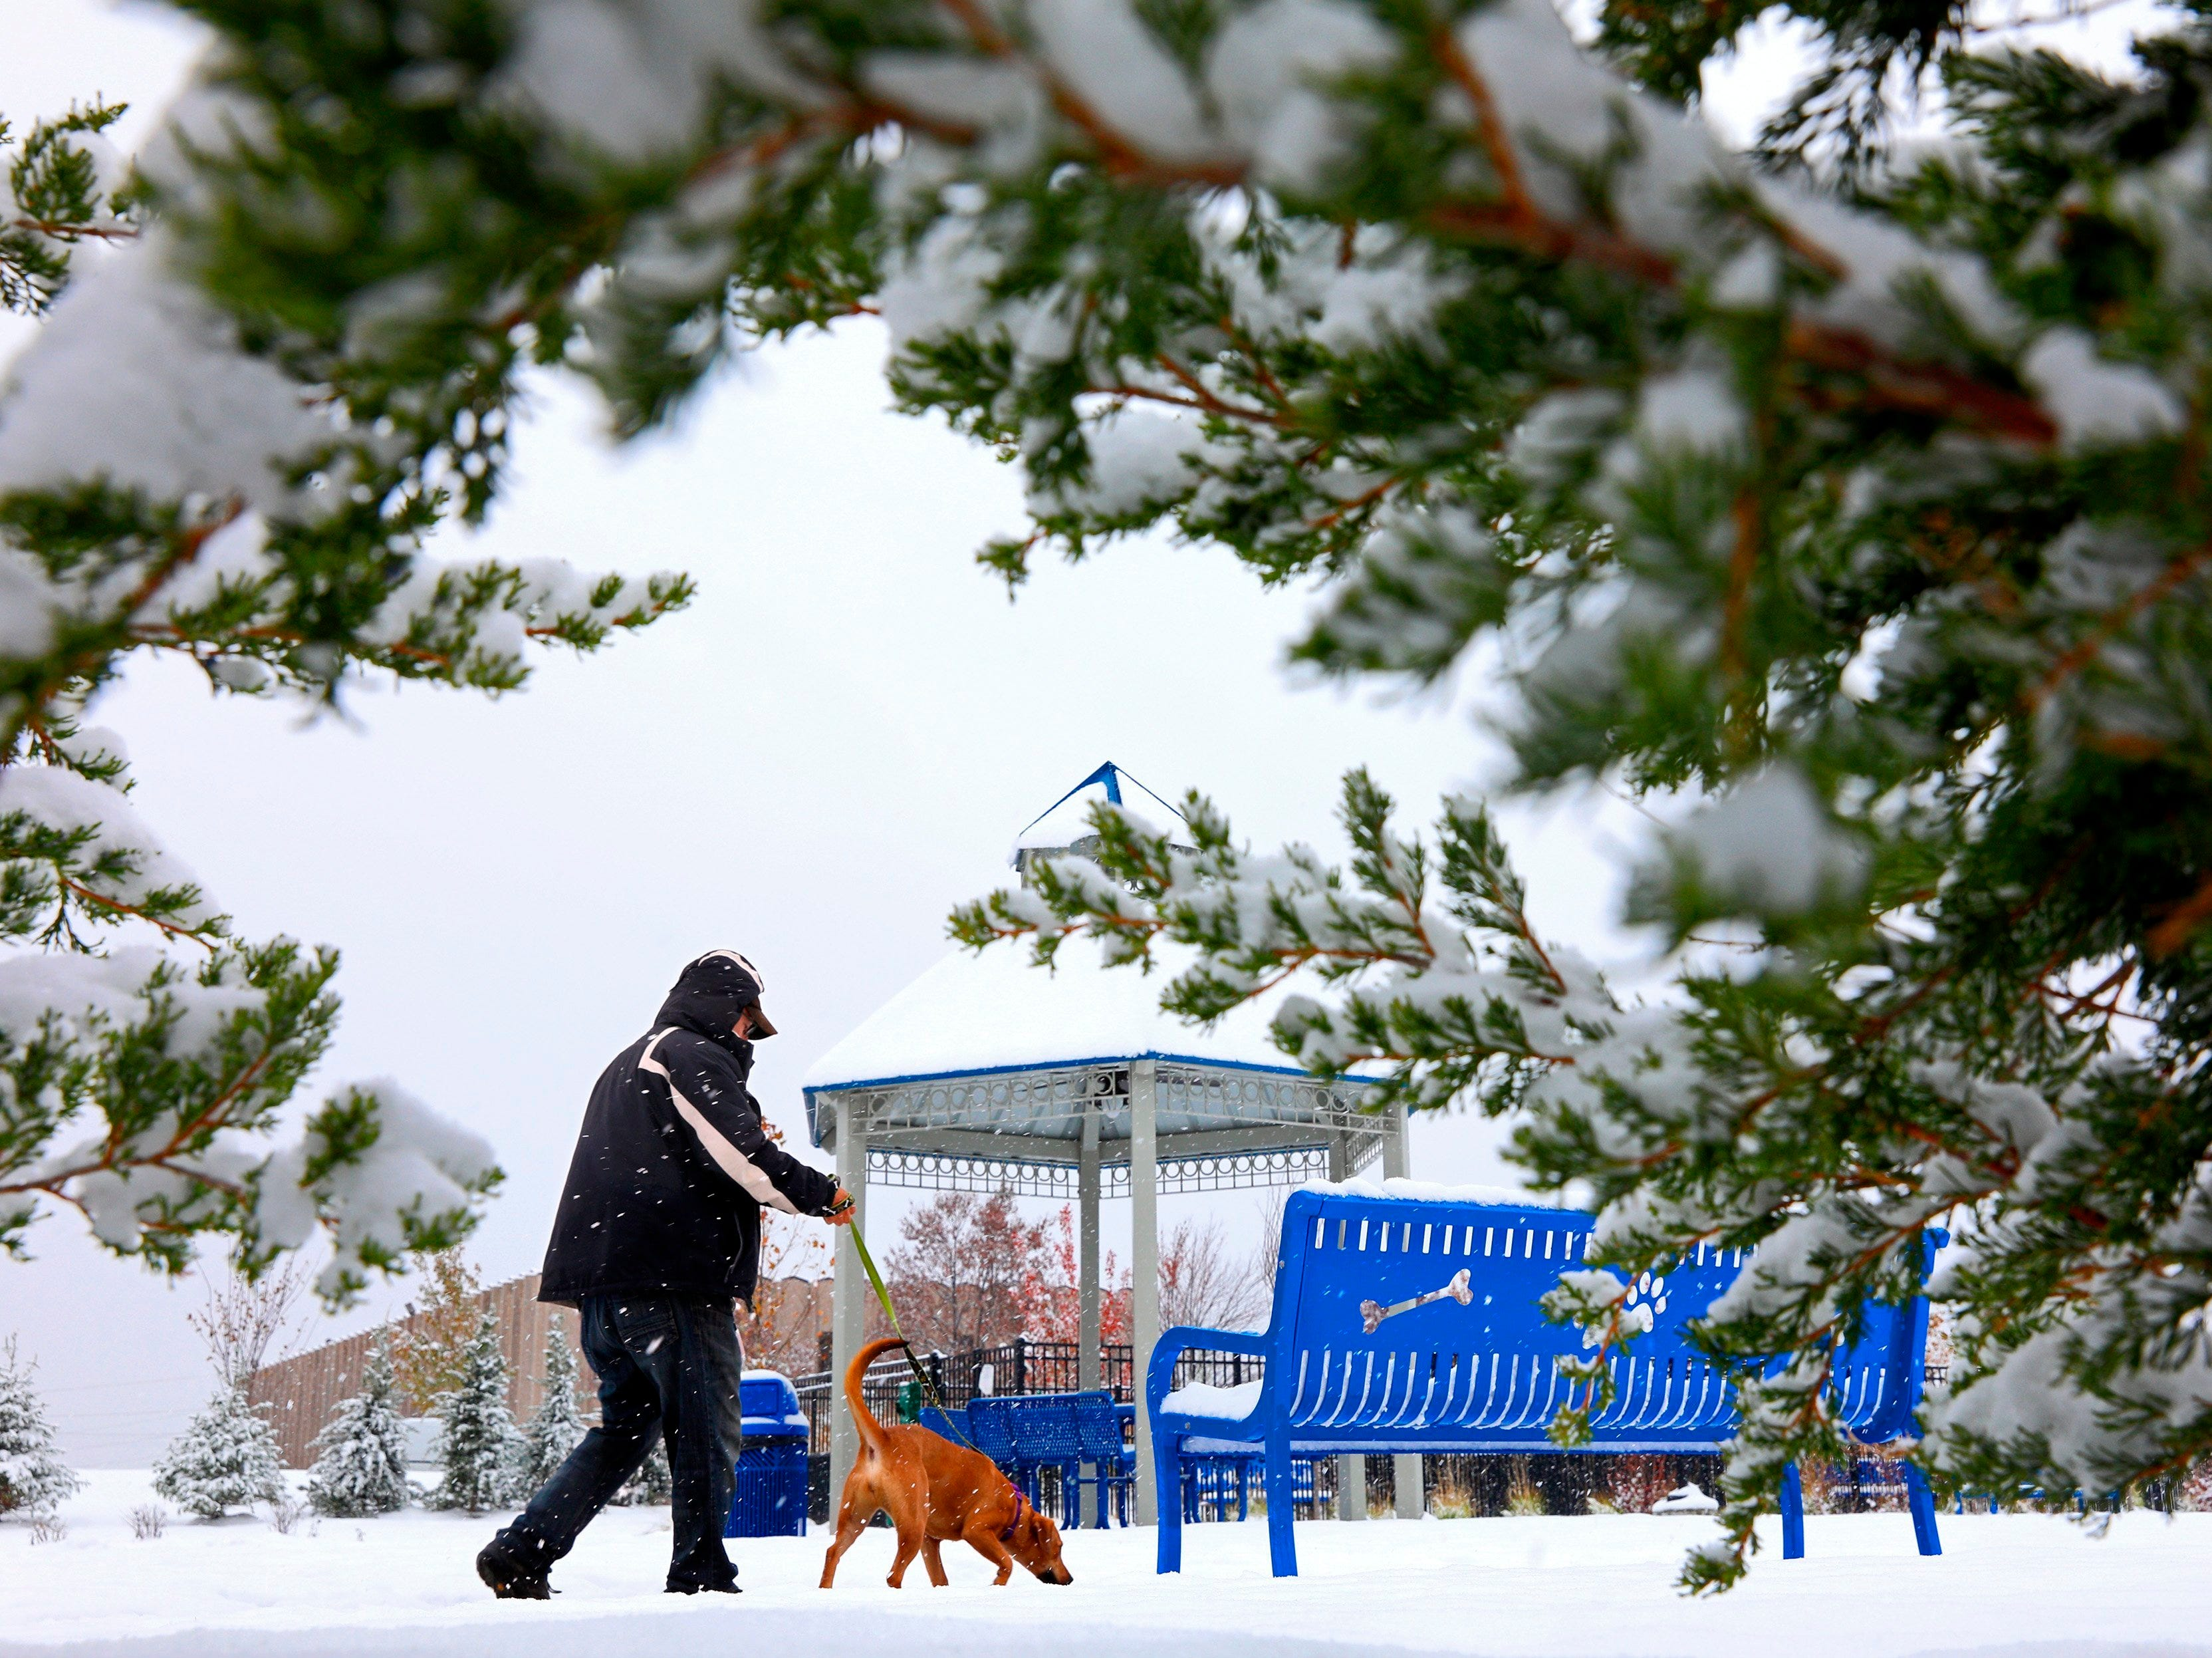 Joe Harrison, a volunteer dog walker, gives Haley a wintry outdoor walk on Thursday, Nov. 15, 2018, in the walking park at the Humane Society of Missouri's Maryland Heights center. A pre-winter storm moved across the eastern half of the country Thursday, slamming parts of the South and lower Midwest on the way.